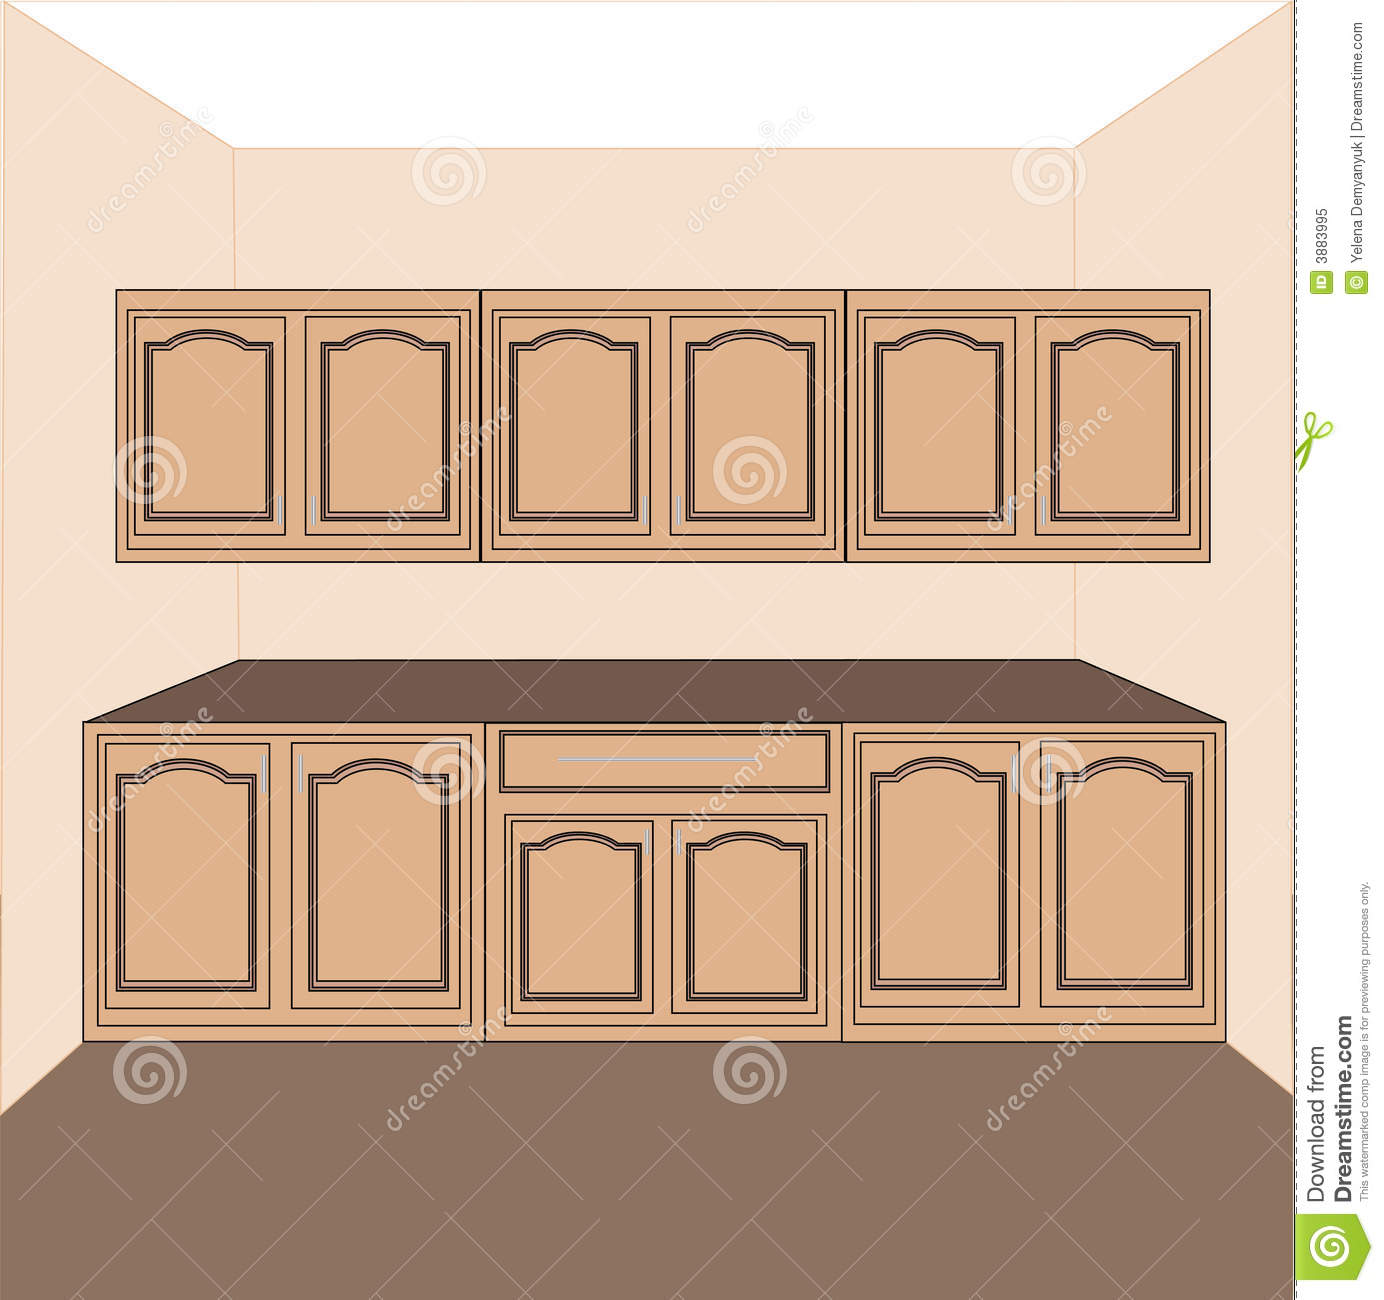 Open Kitchen Cupboard Related Keywords Suggestions For Open Kitchen Cupboard Clipart